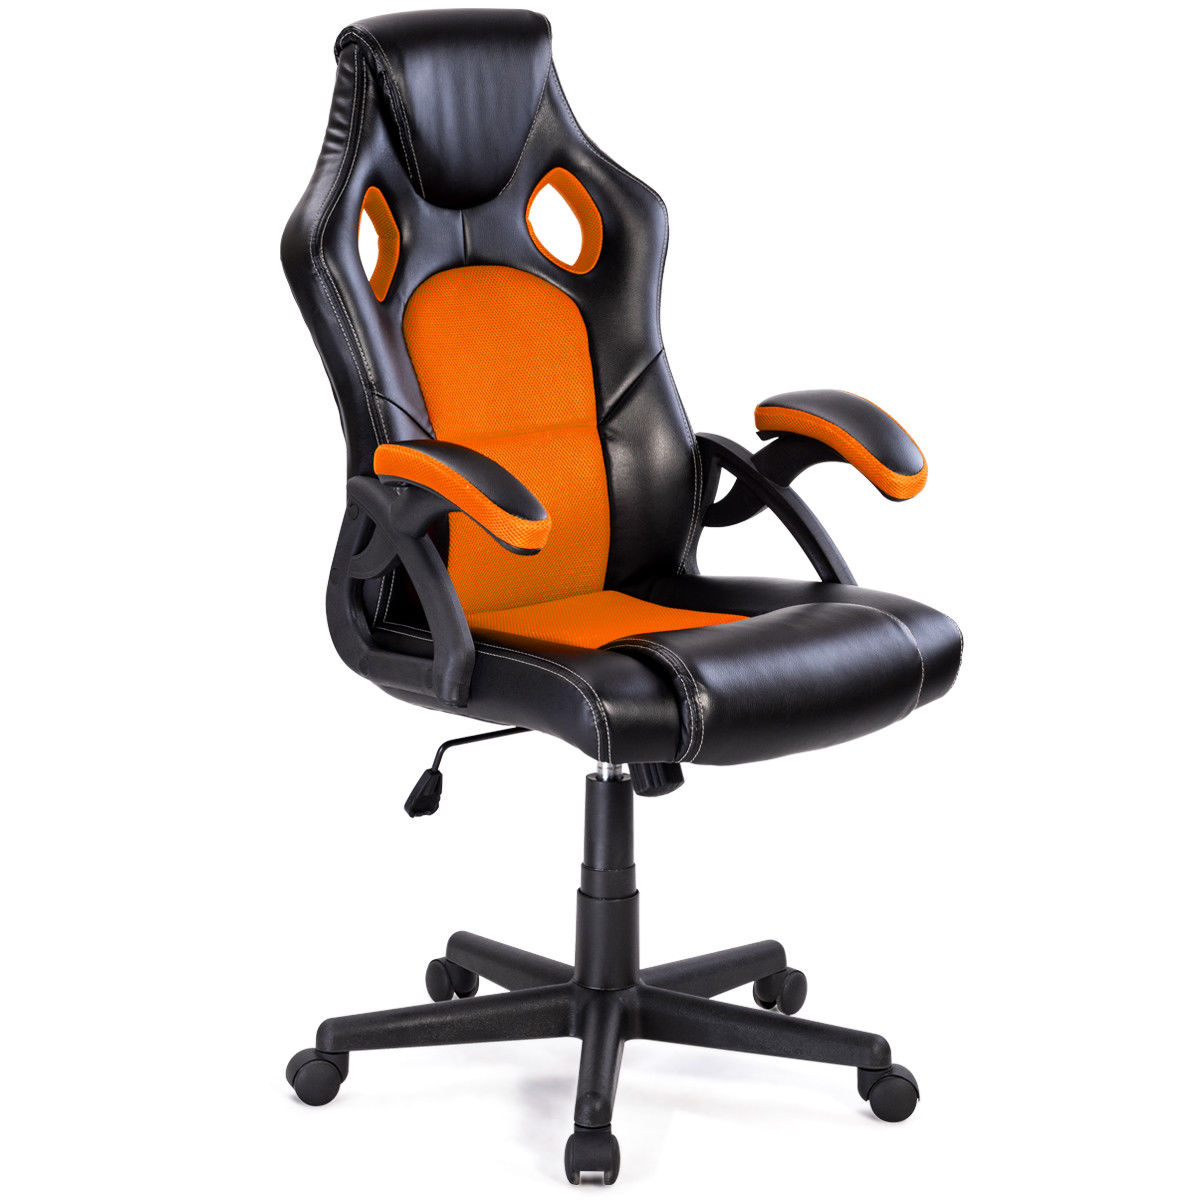 Costway PU Leather Executive Bucket Seat Racing Style Office Chair Computer Desk Task